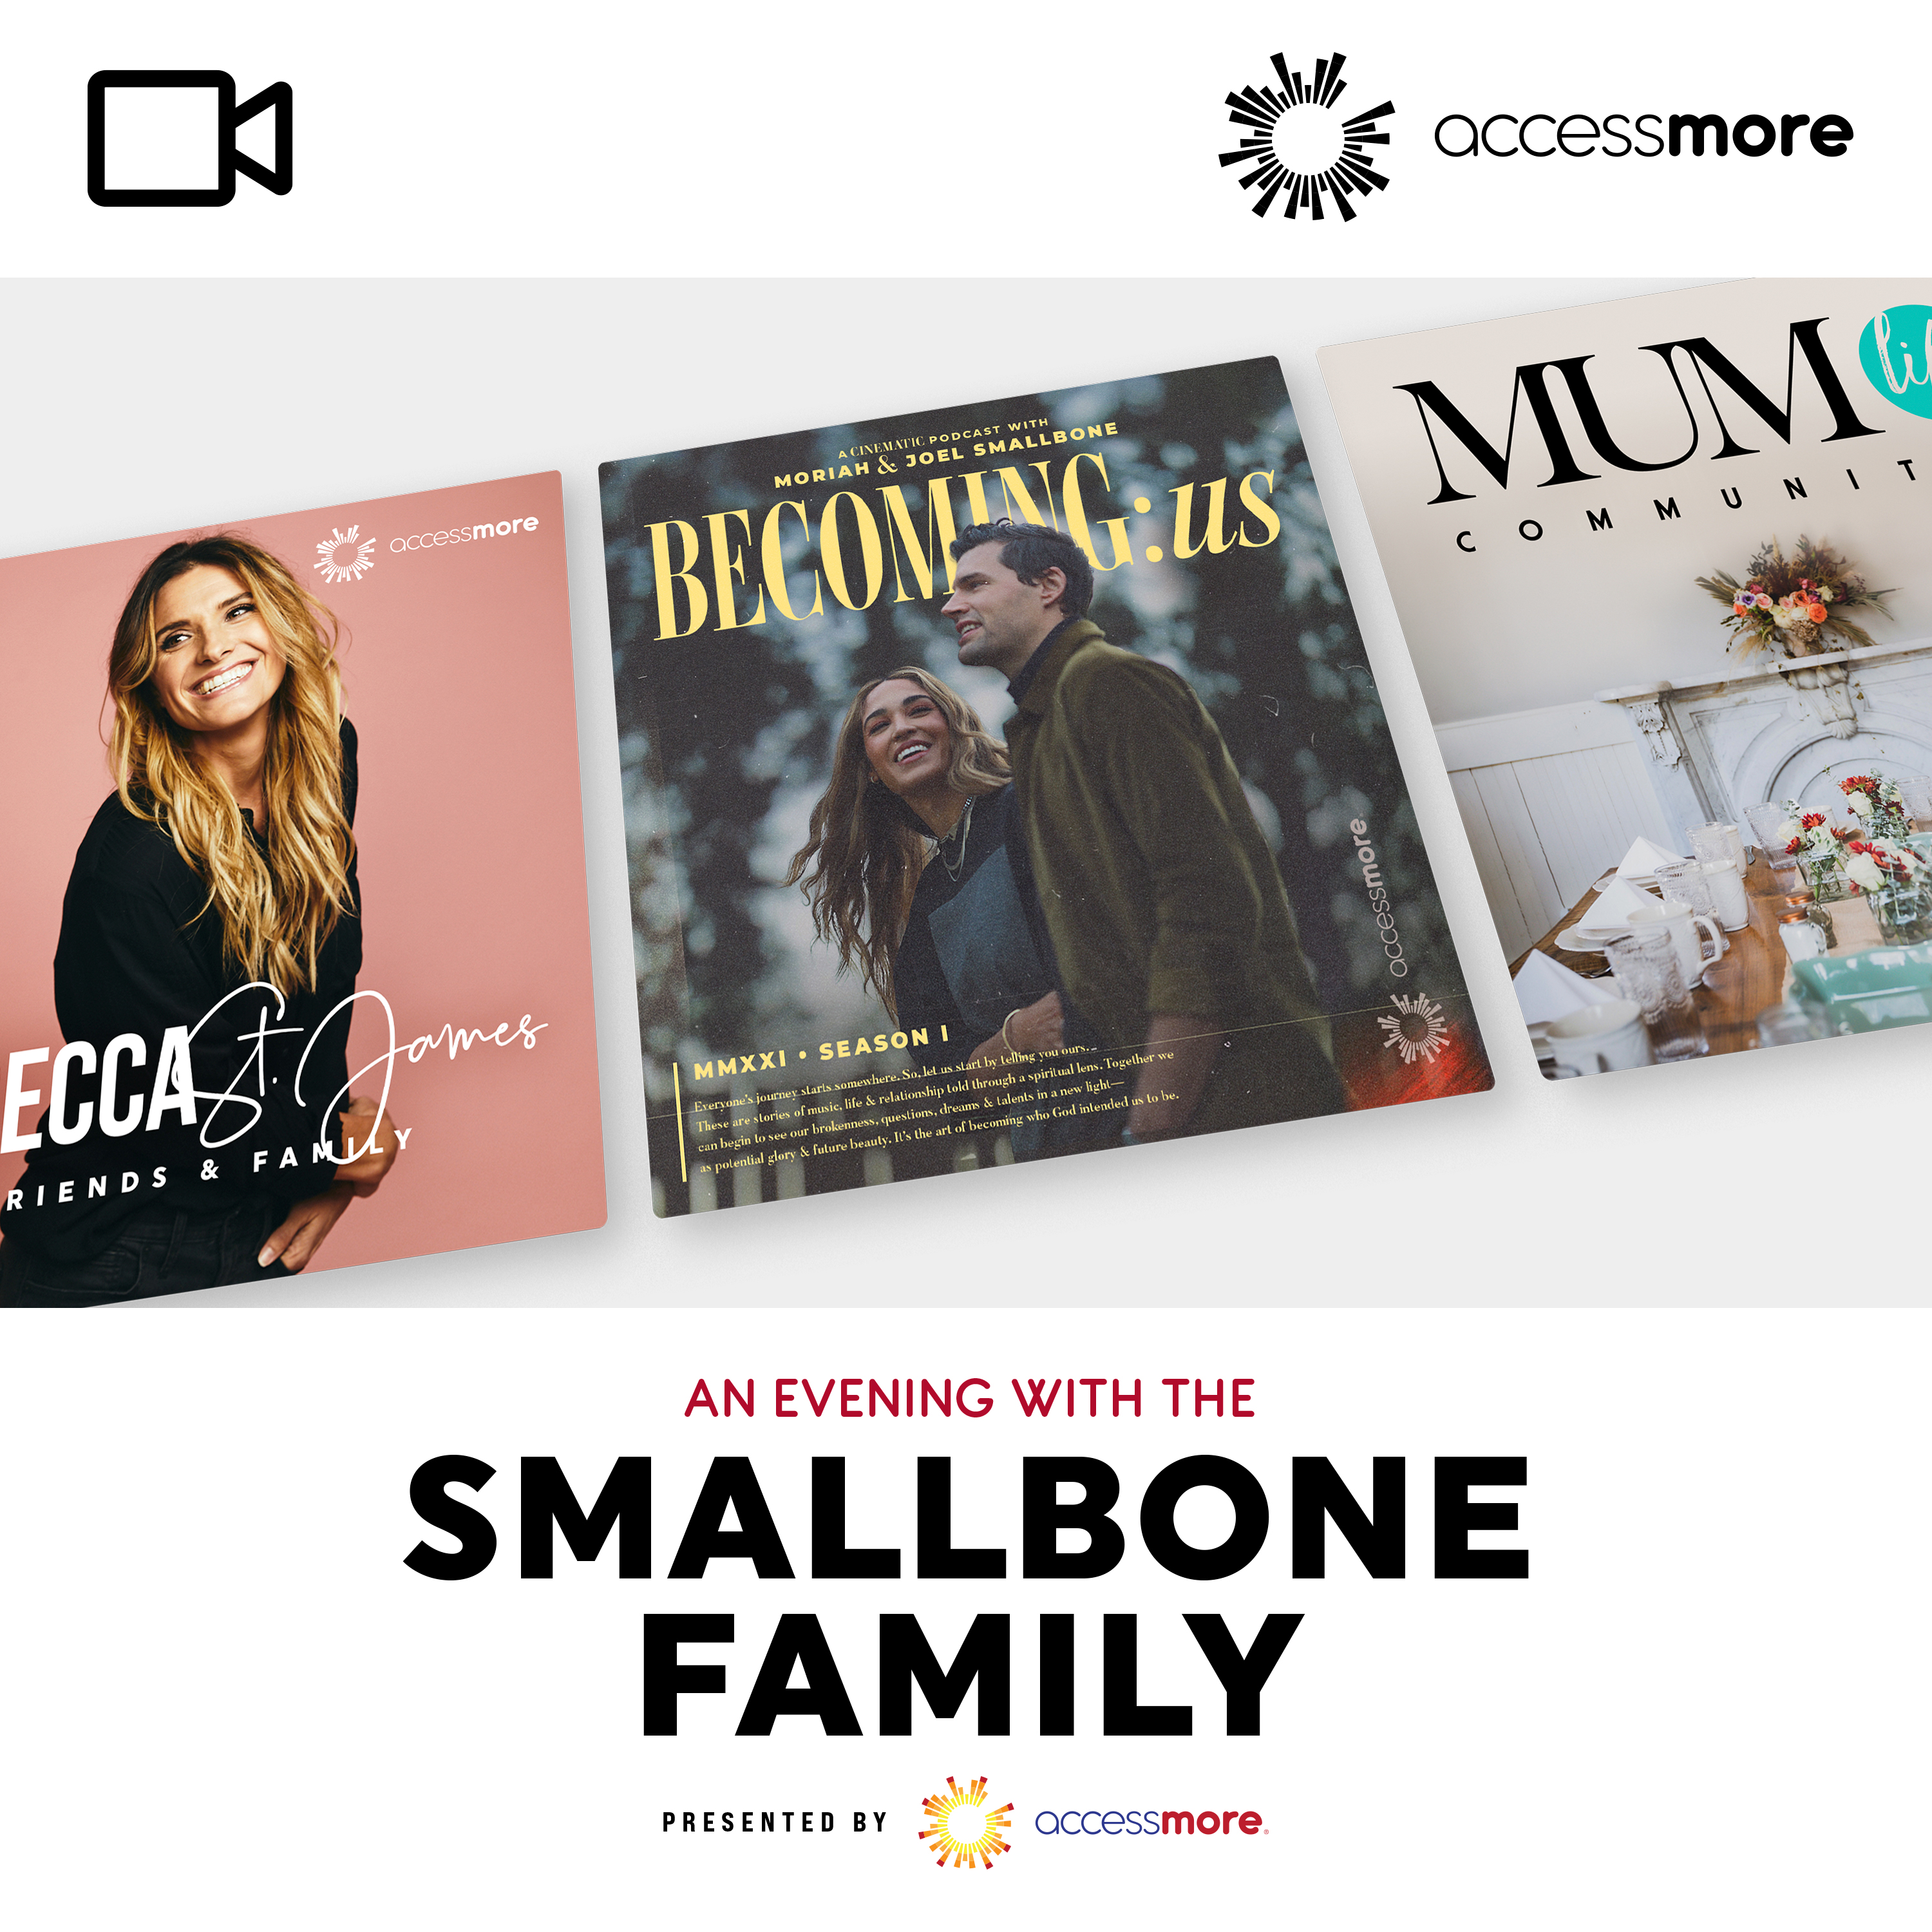 An Evening with the Smallbone Family